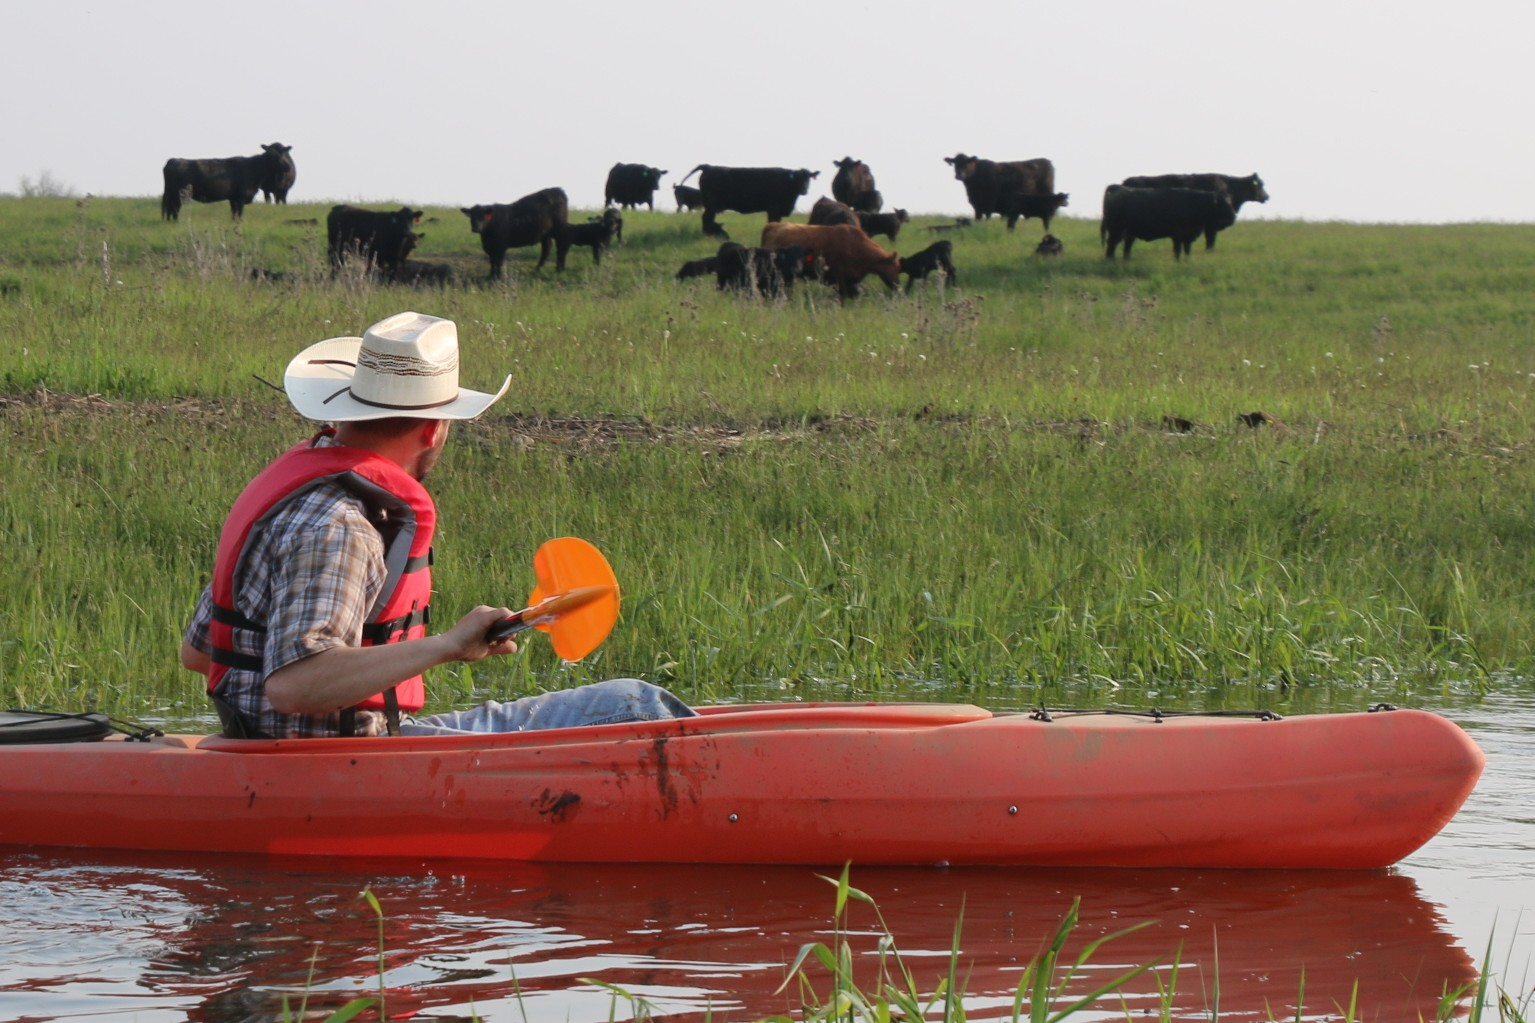 KELO Freeman Kayak Rancher